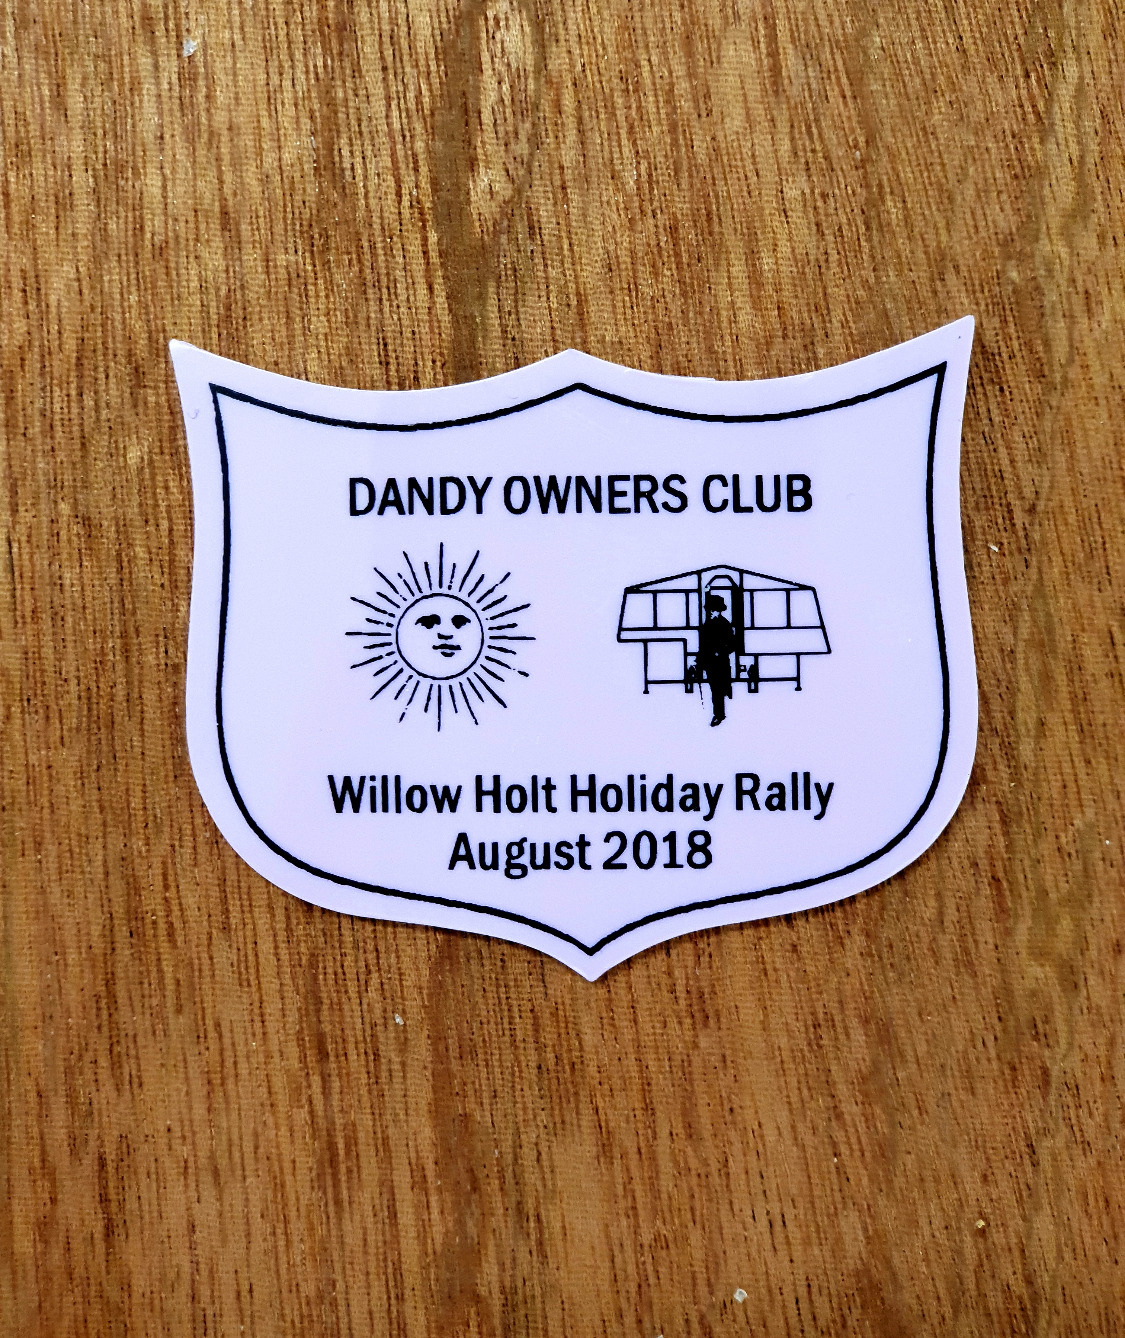 Dandy Owners Club H